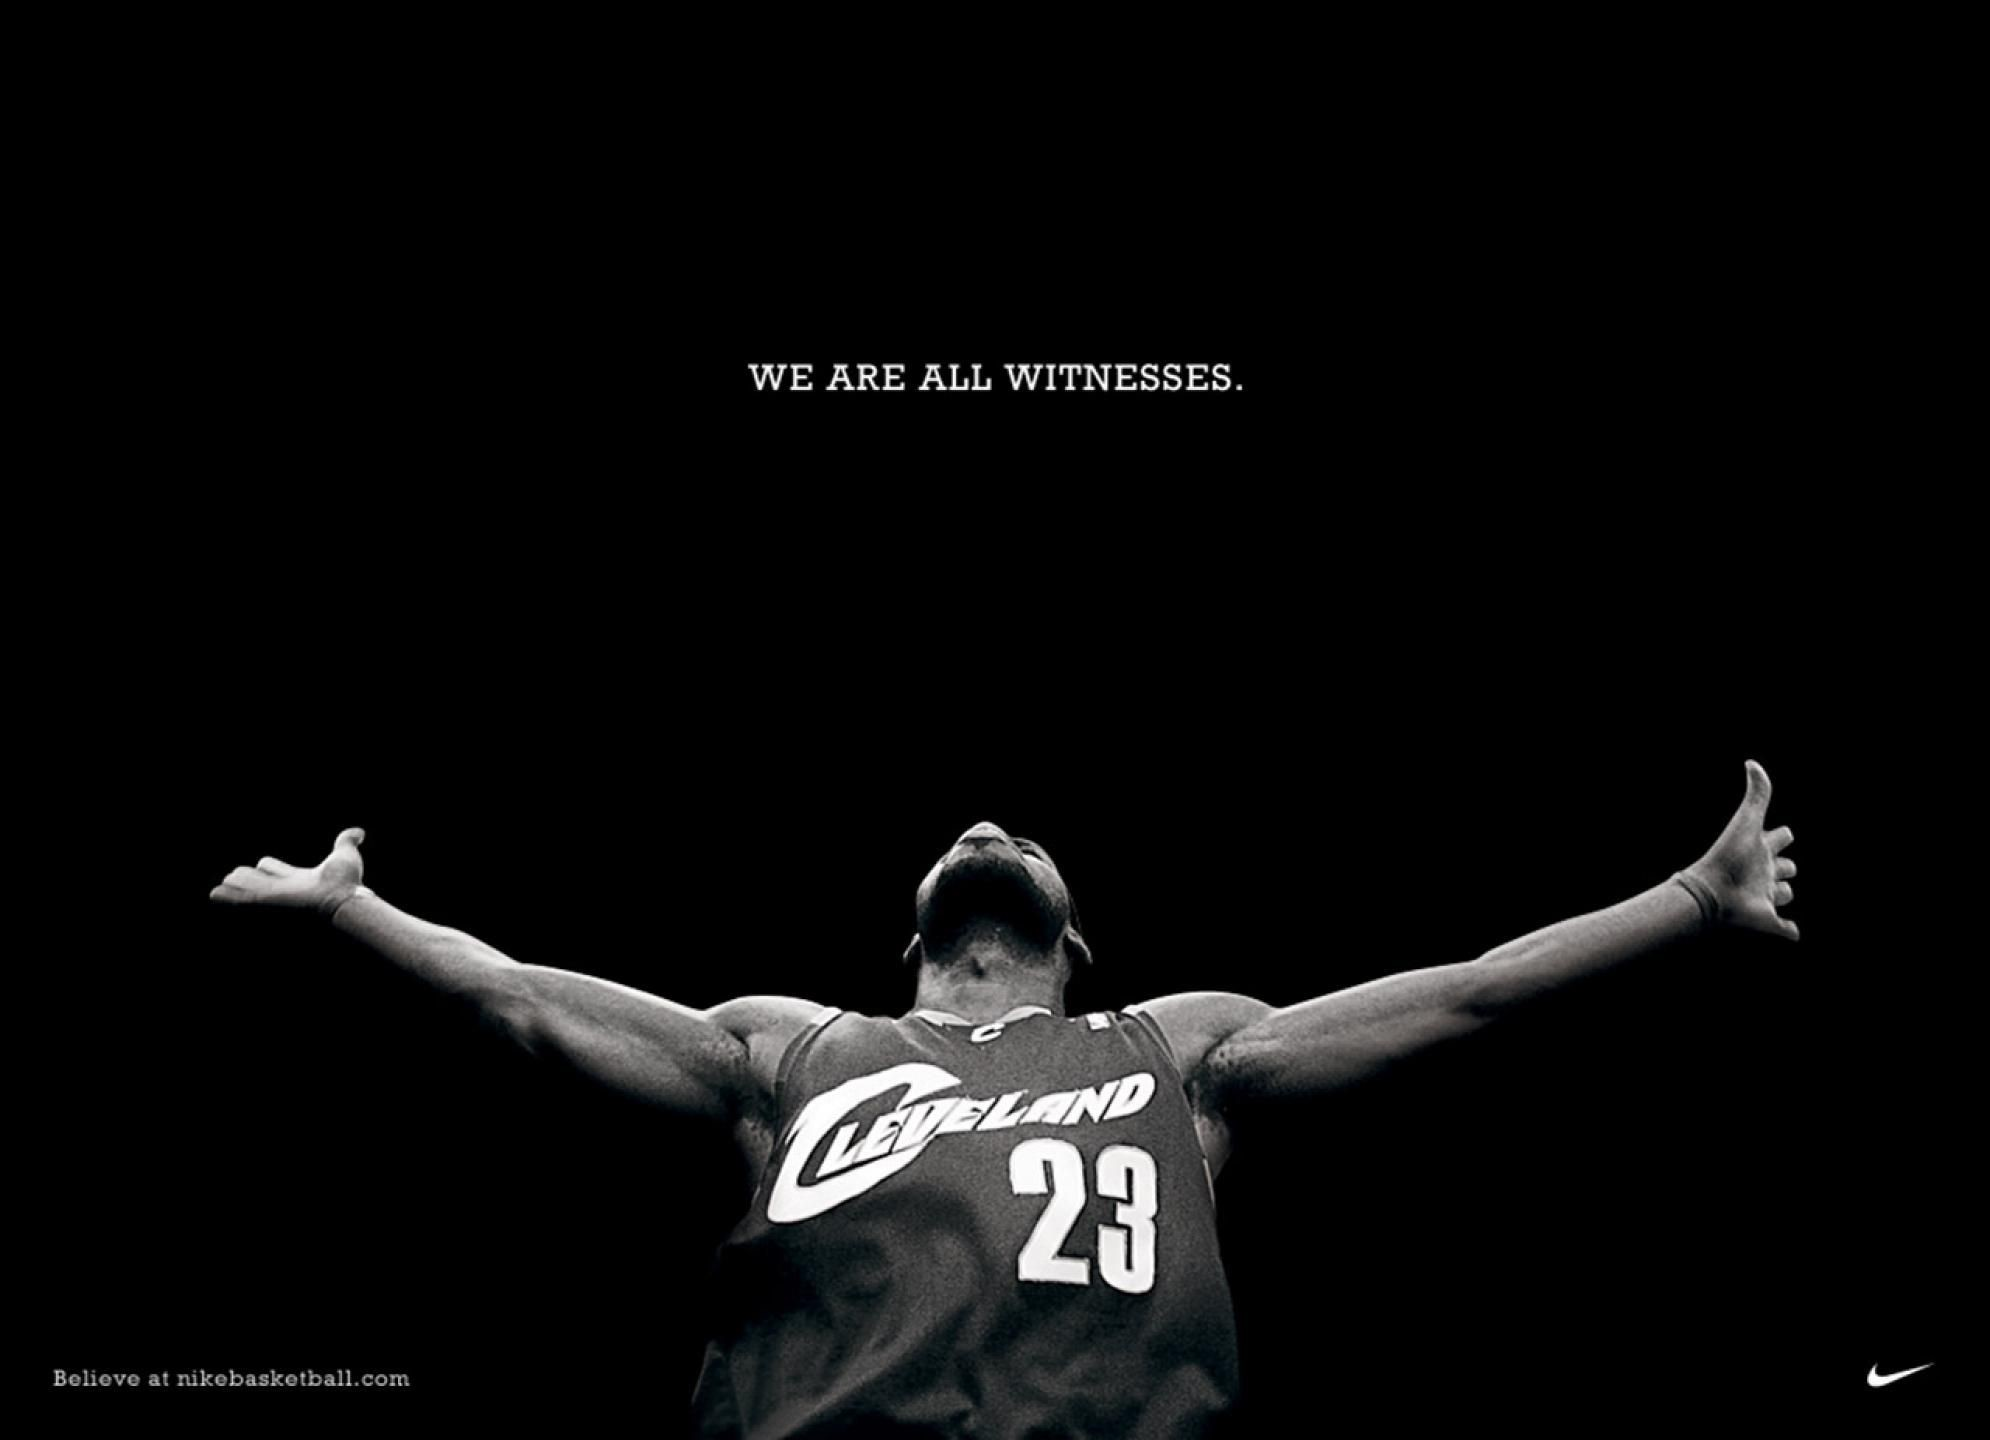 1990x1440 LeBron James Wallpaper We Are All Witnesses